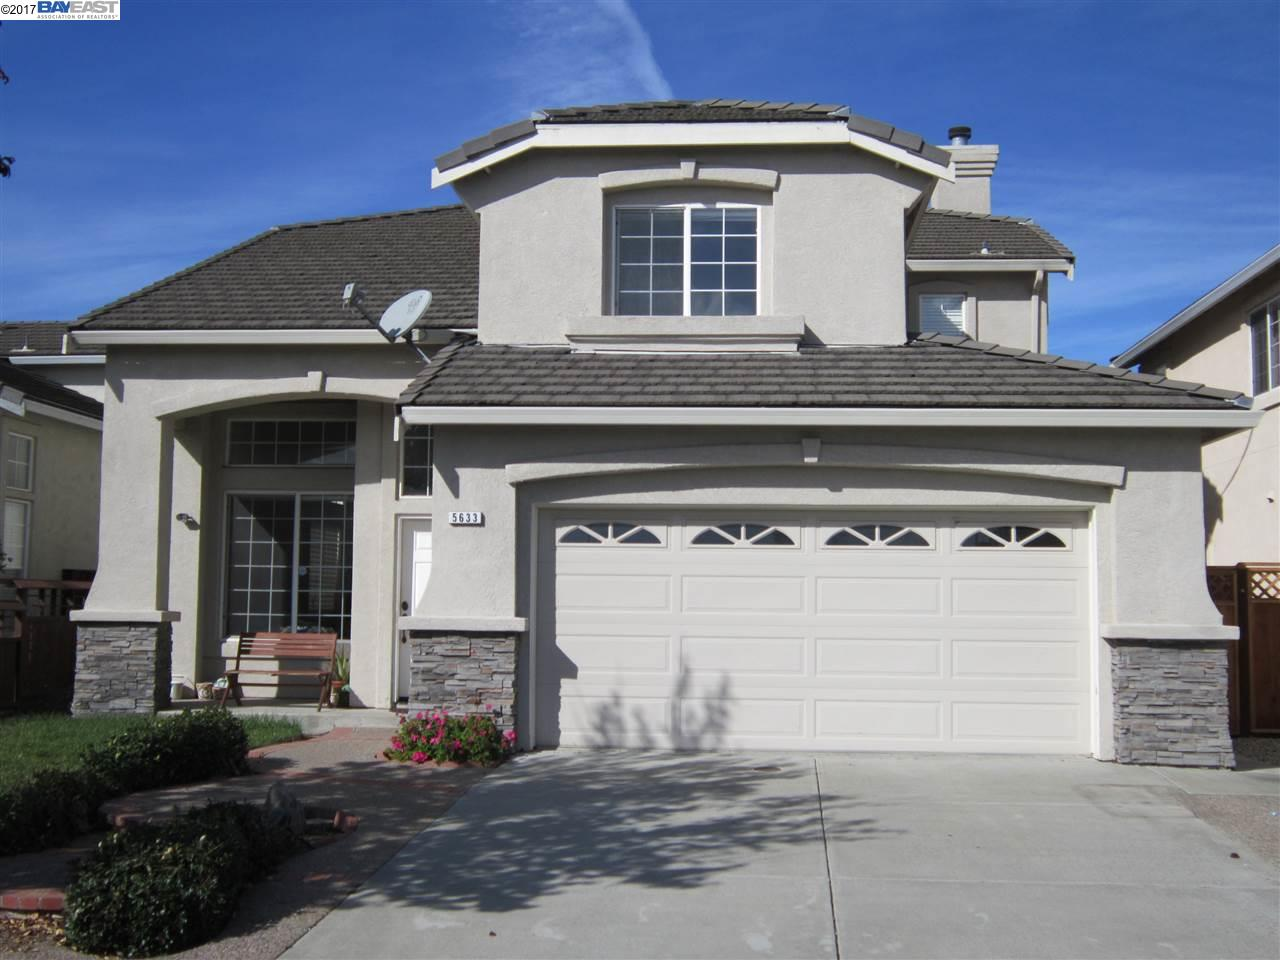 Single Family Home for Rent at 5633 Pacific Grove Way 5633 Pacific Grove Way Union City, California 94587 United States